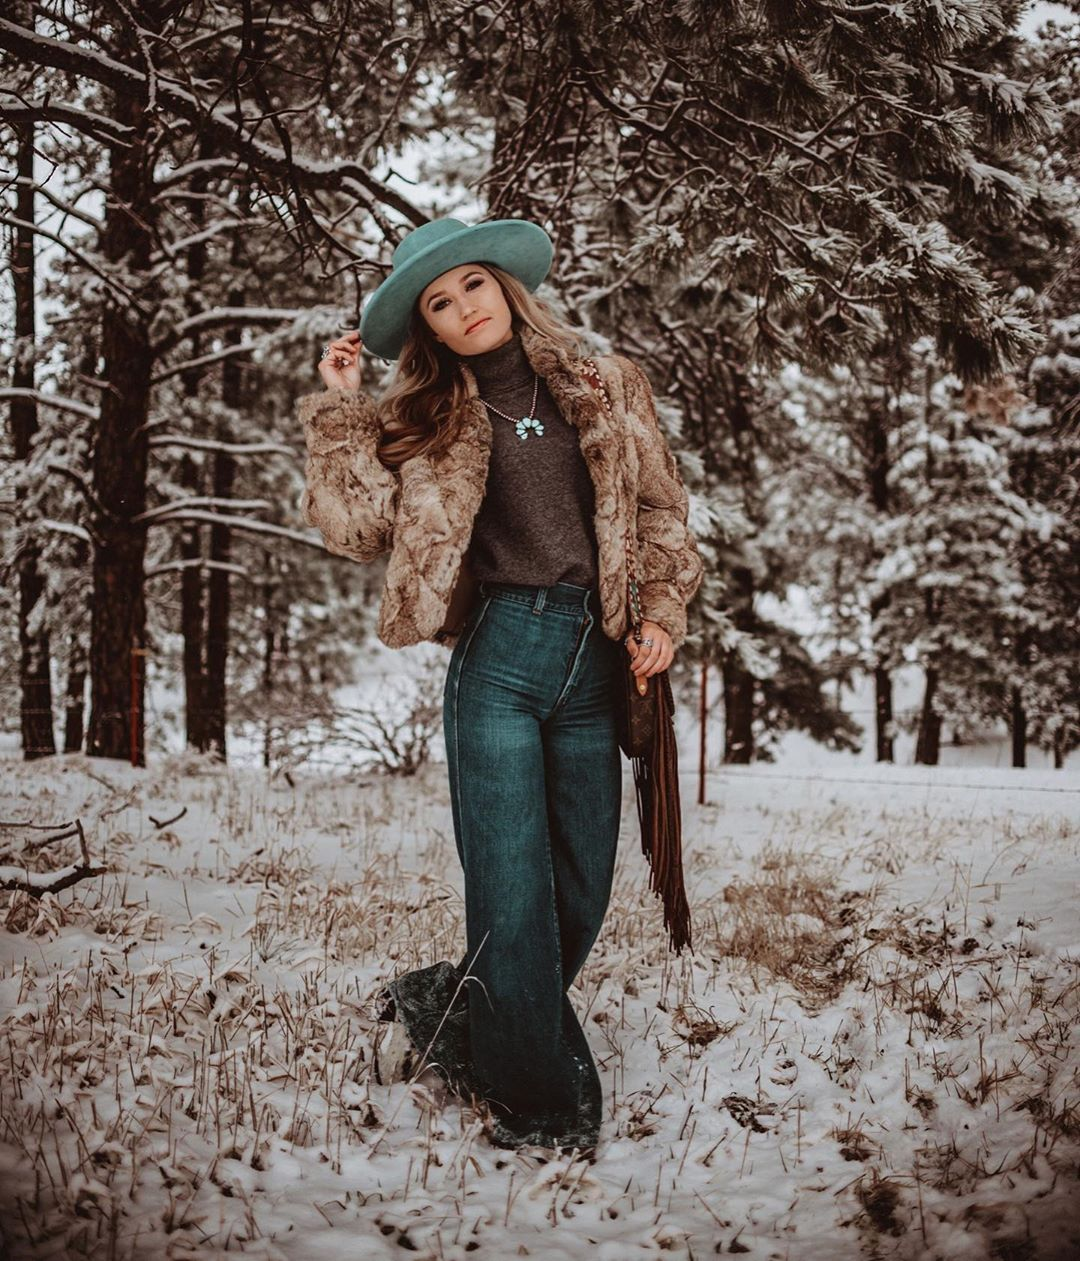 """Chelsea Glanz on Instagram: """"I'm not a fan of the snow, But running around in the snow in a fur coat and @emily.nicole.photography was pretty amazing"""